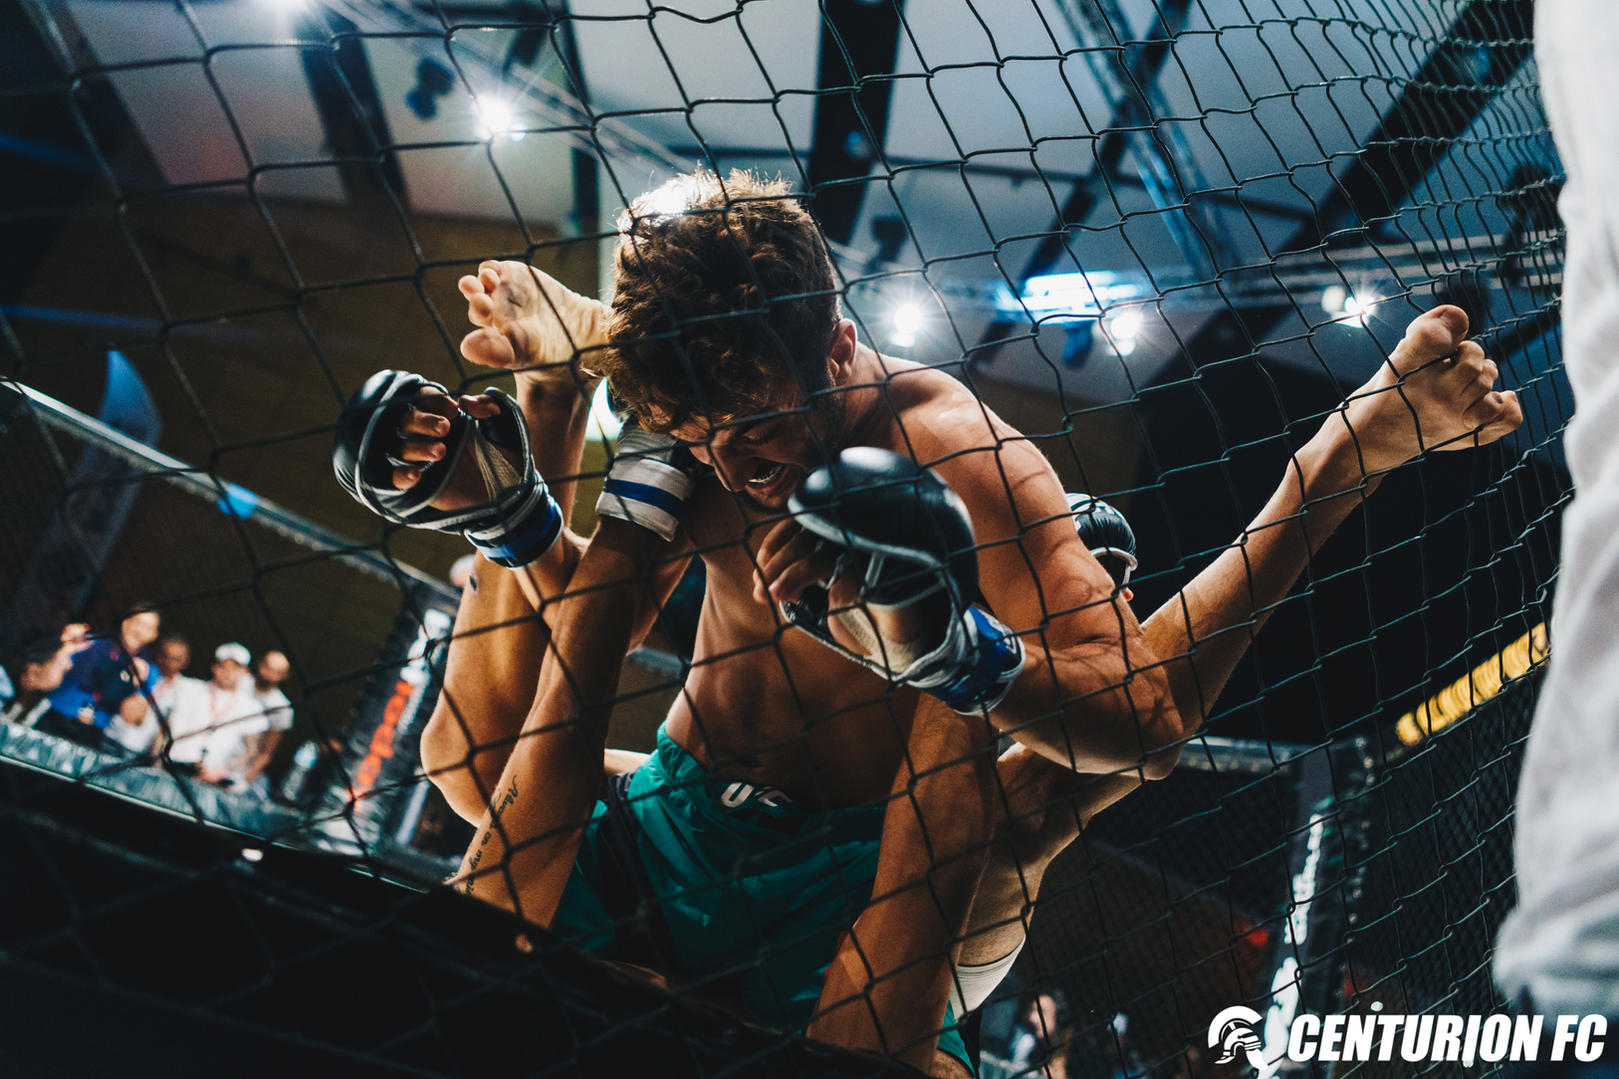 Centurion Fight Championship 6: Resilience